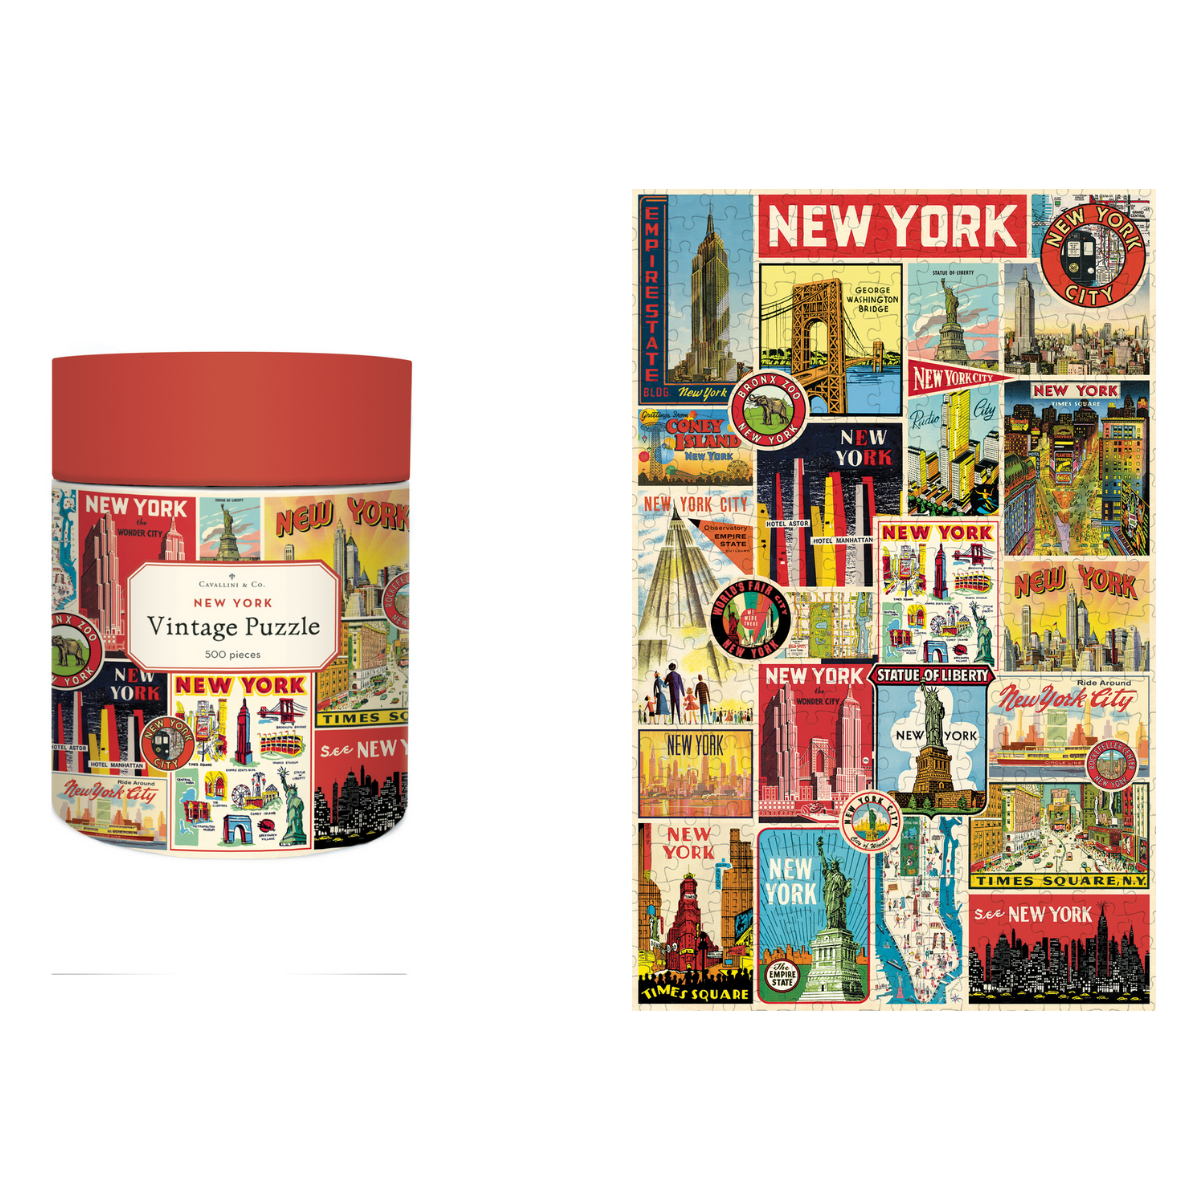 Cavallini & Co. NYC Collage 500 Piece Jigsaw Puzzle